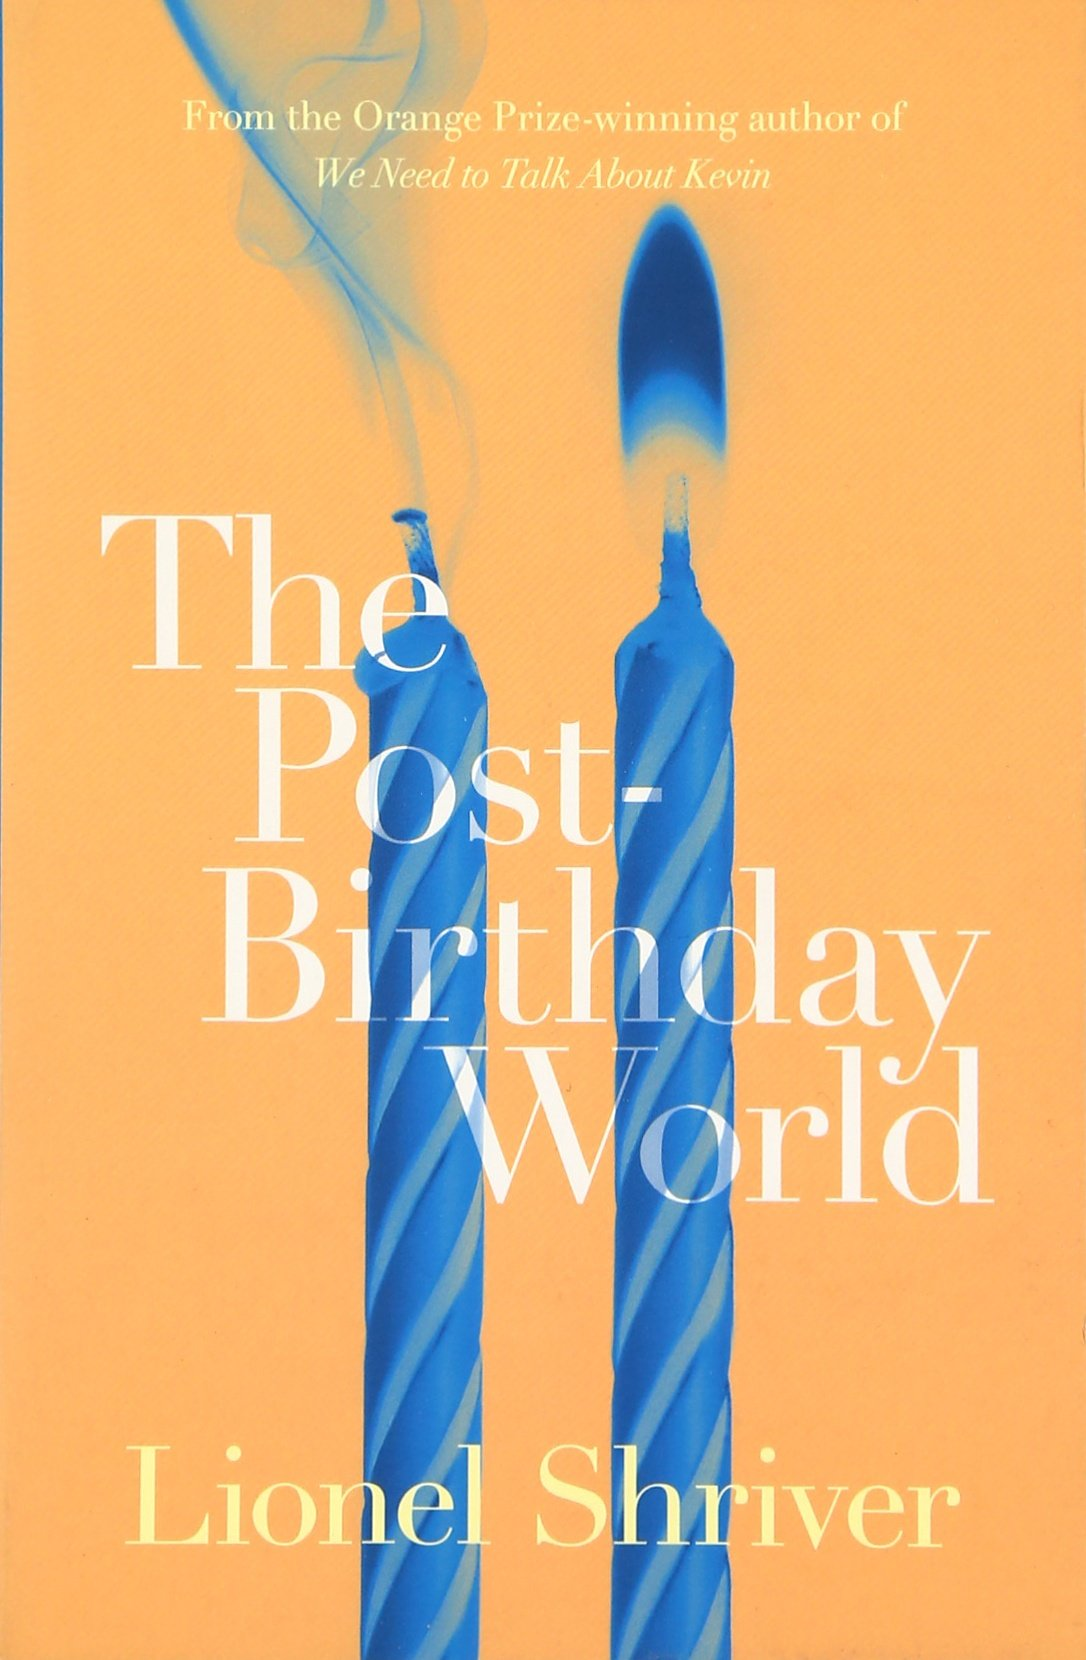 The Postbirthday World: Amazon: Lionel Shriver: 9780007578030: Books